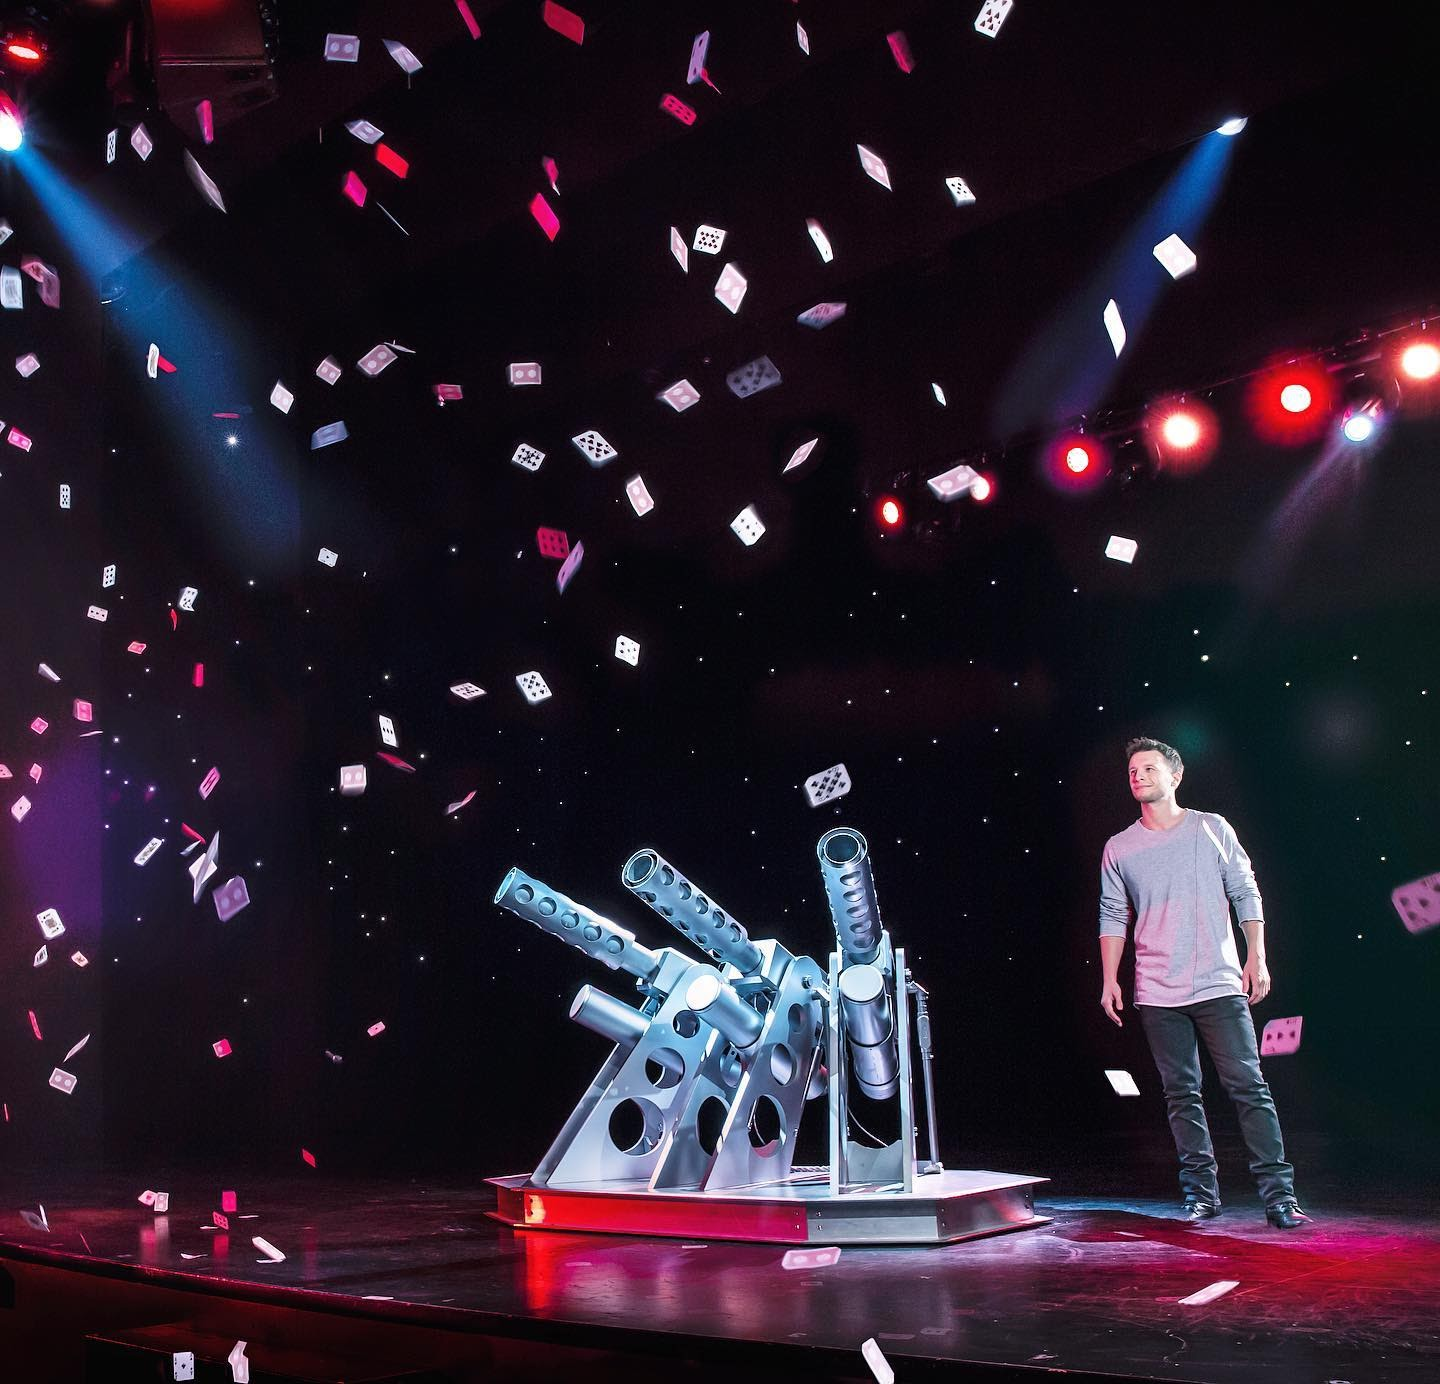 Vegas magician Mat Franco stands on the stage with a backdrop of stars behind him. A cannon with three funnels is next to him and dozens of cards shoot from the cannon and fly into the audience.